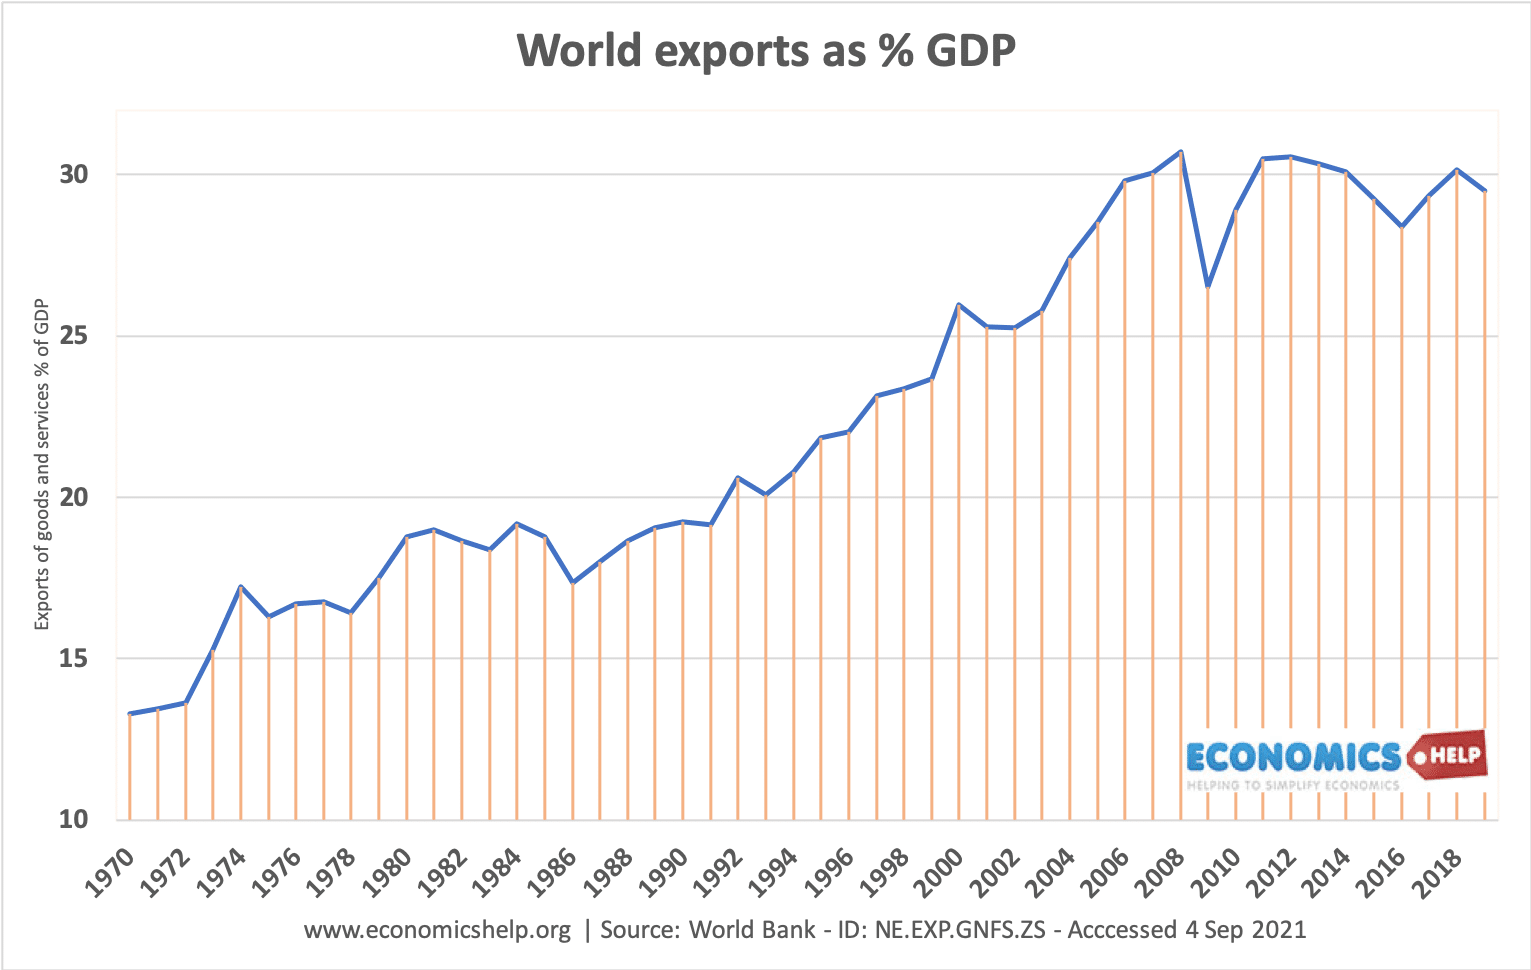 world-exports-gdp-1970-2020